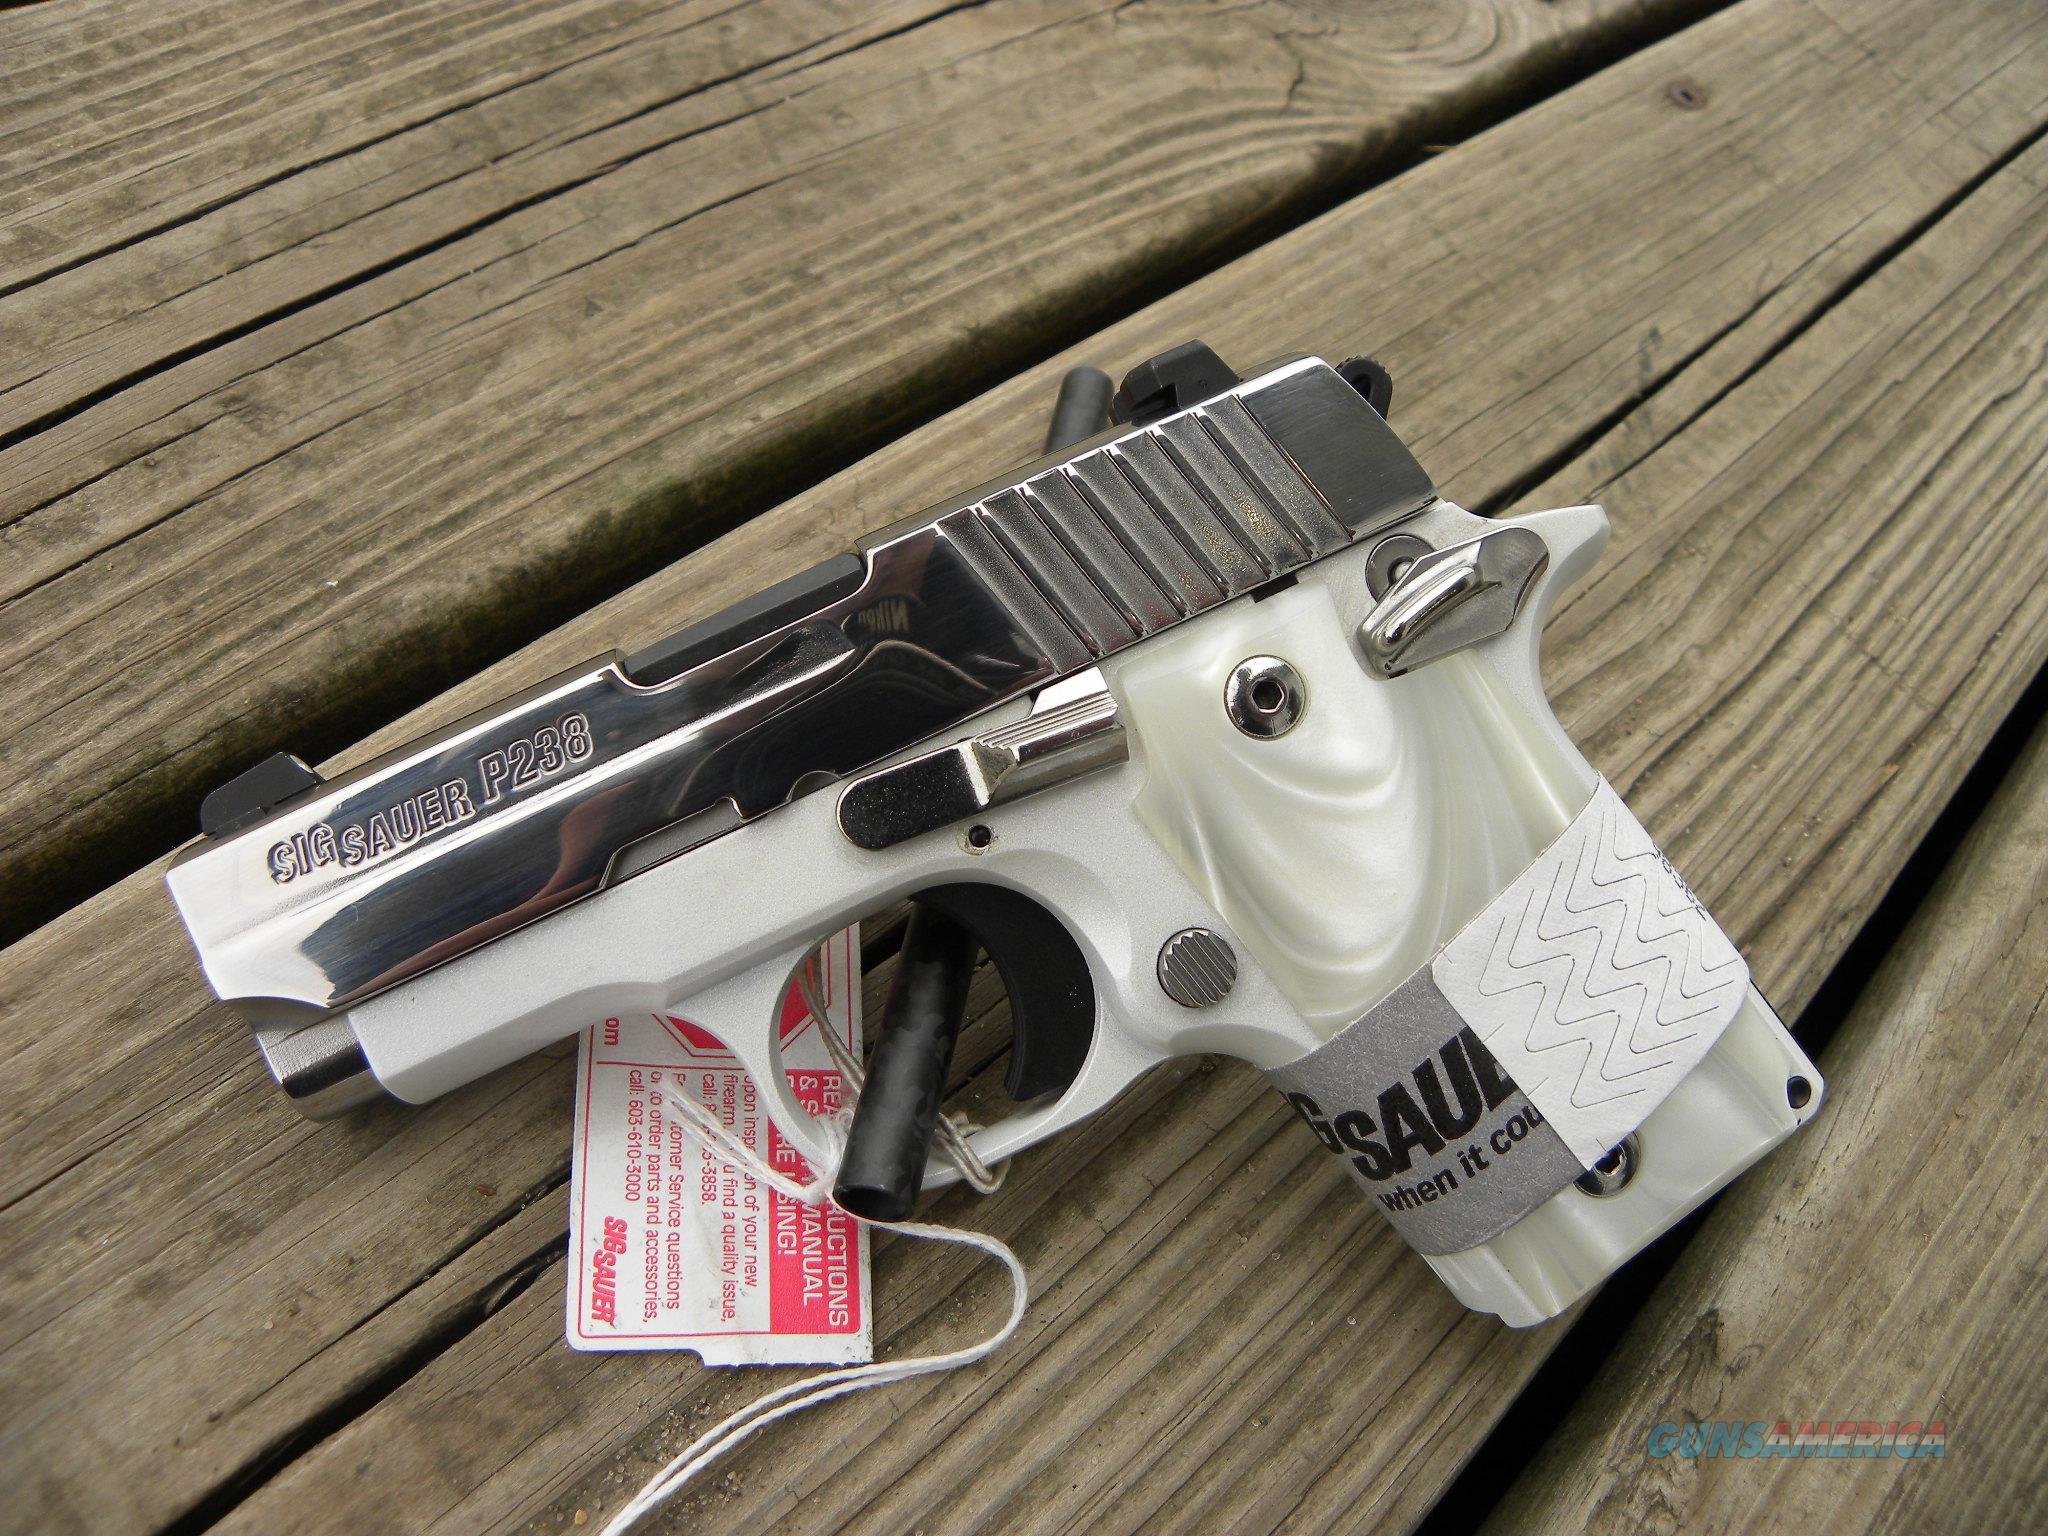 "SPECIAL Sig Sauer P238 White Chrome 2.7"" 6+1  Guns > Pistols > Sig - Sauer/Sigarms Pistols > P238"